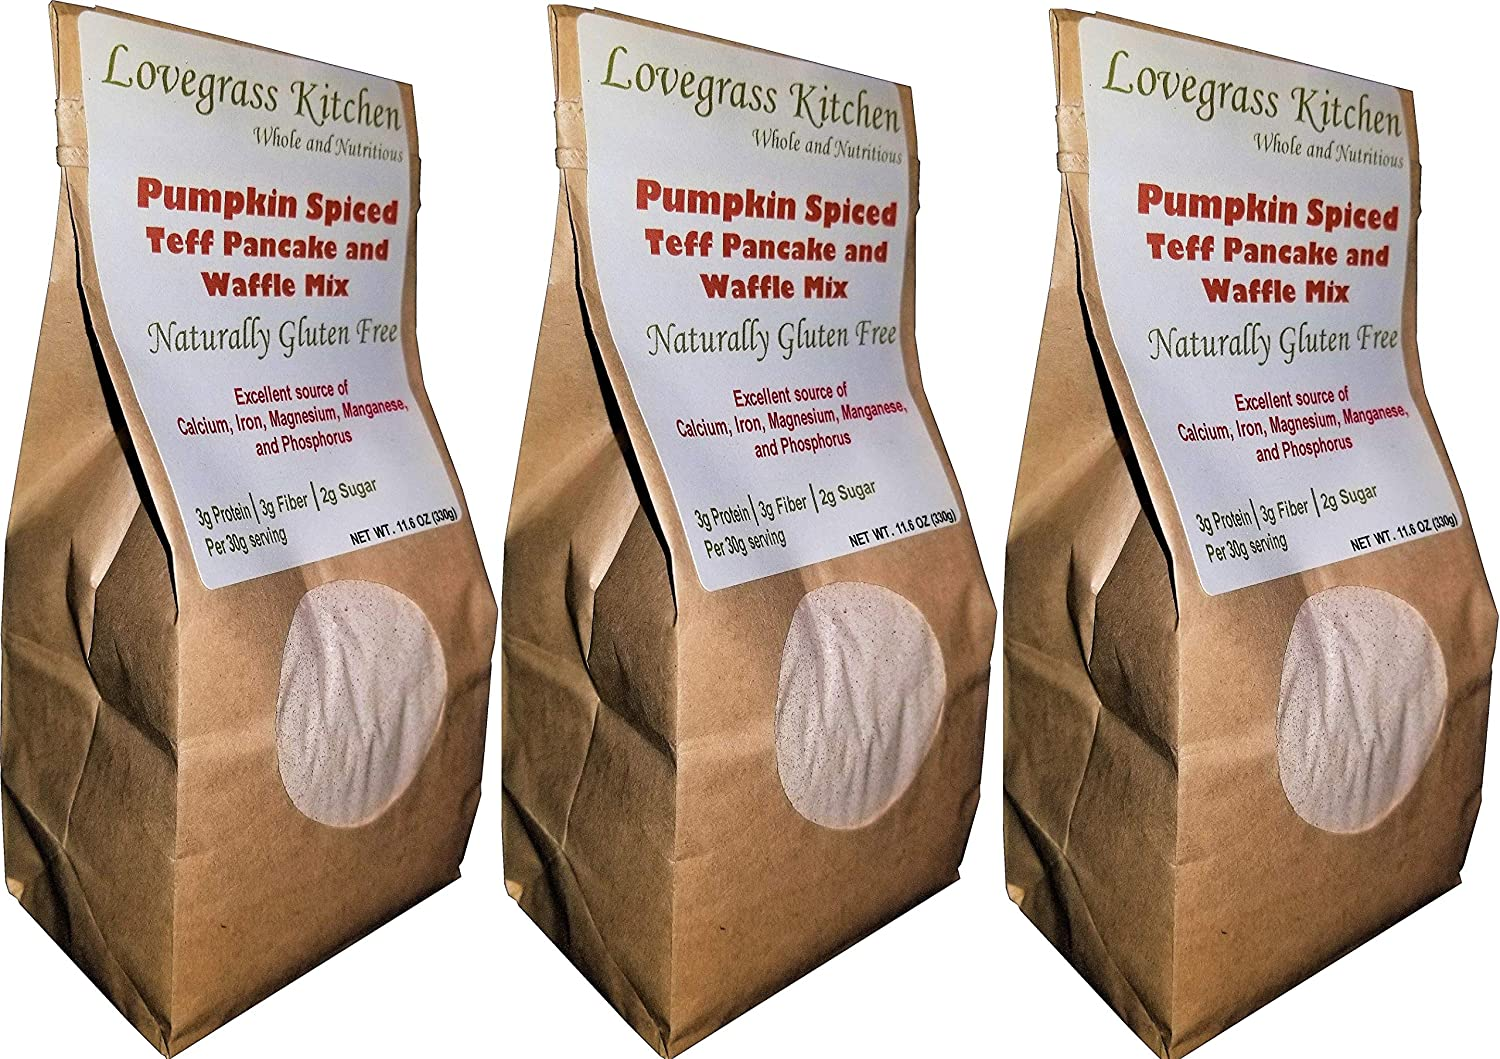 Pumpkin Spiced Teff Pancake and Waffle Mix (Box of 3)